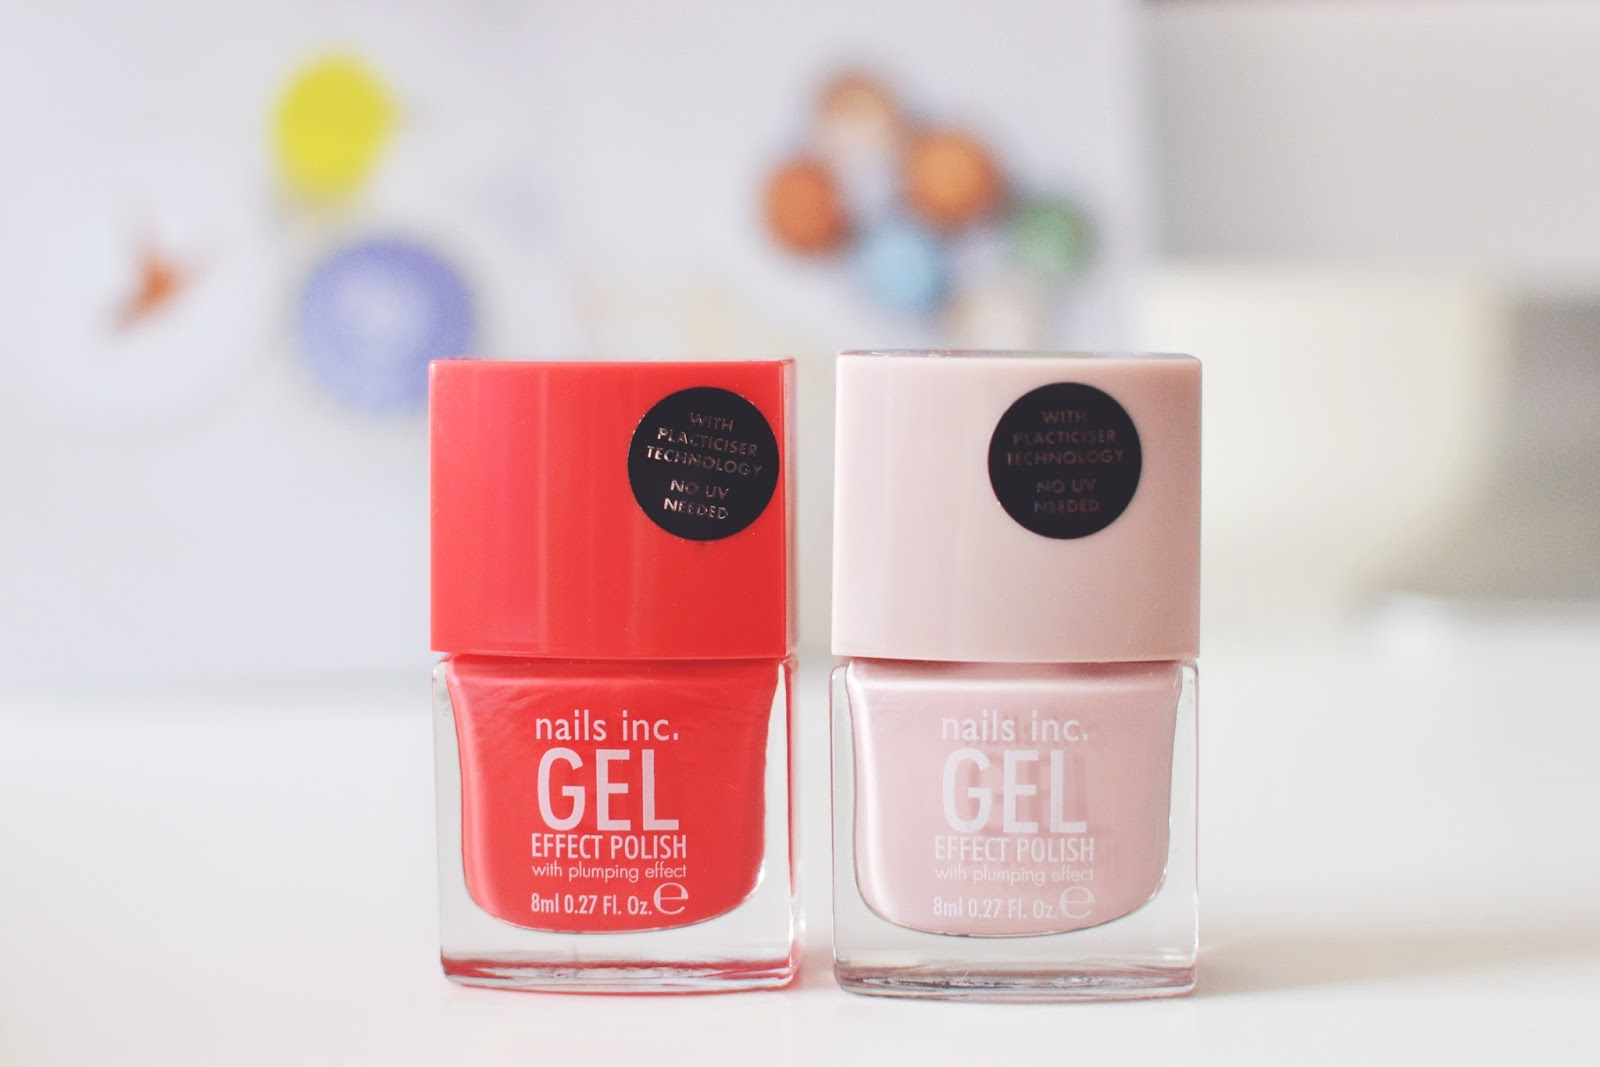 Nails inc Gel Effect Polish Review